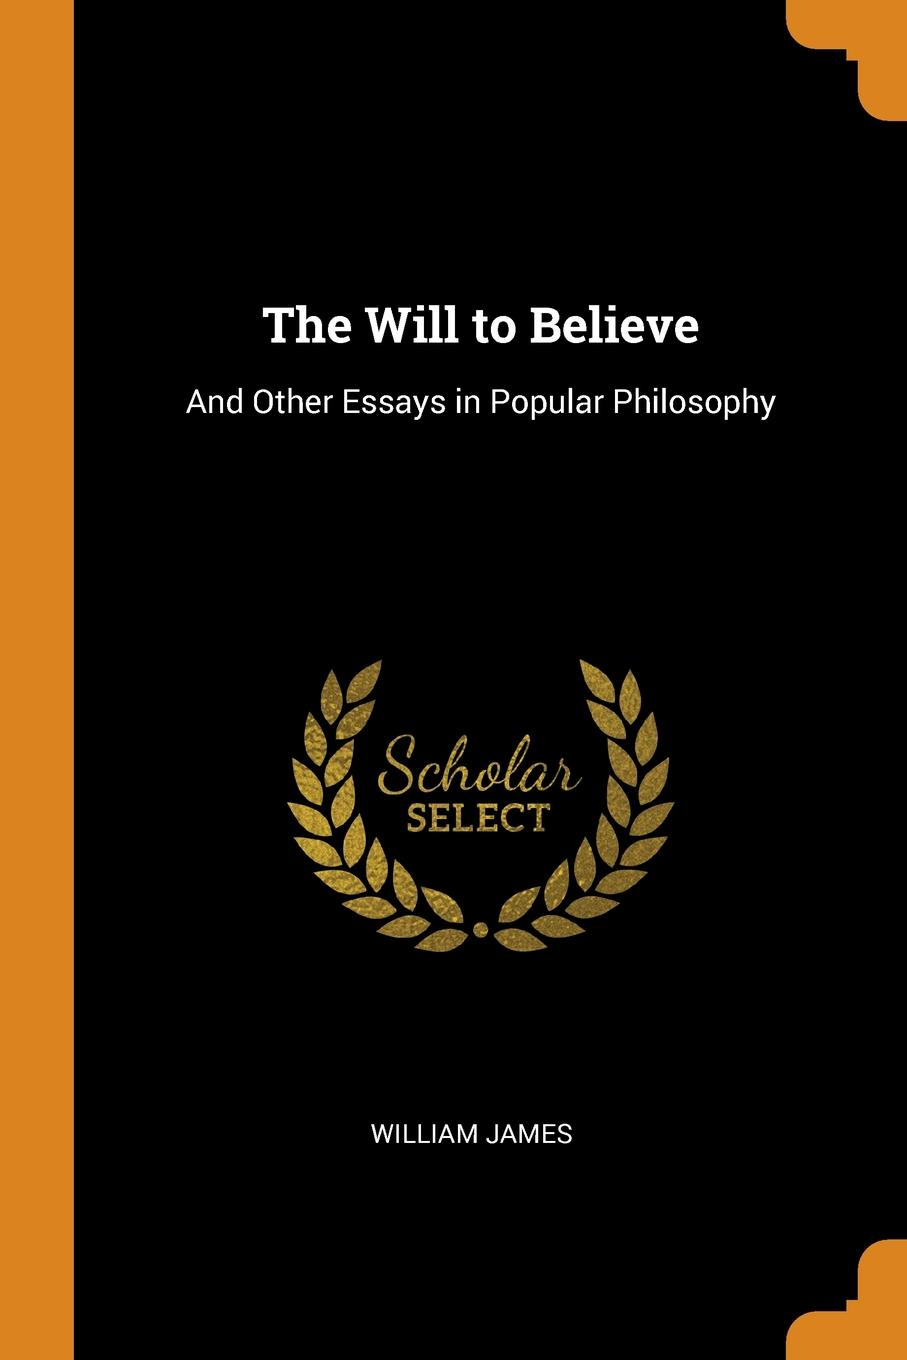 William James The Will to Believe. And Other Essays in Popular Philosophy william james the will to believe and other essays in popular philosophy and human immortality